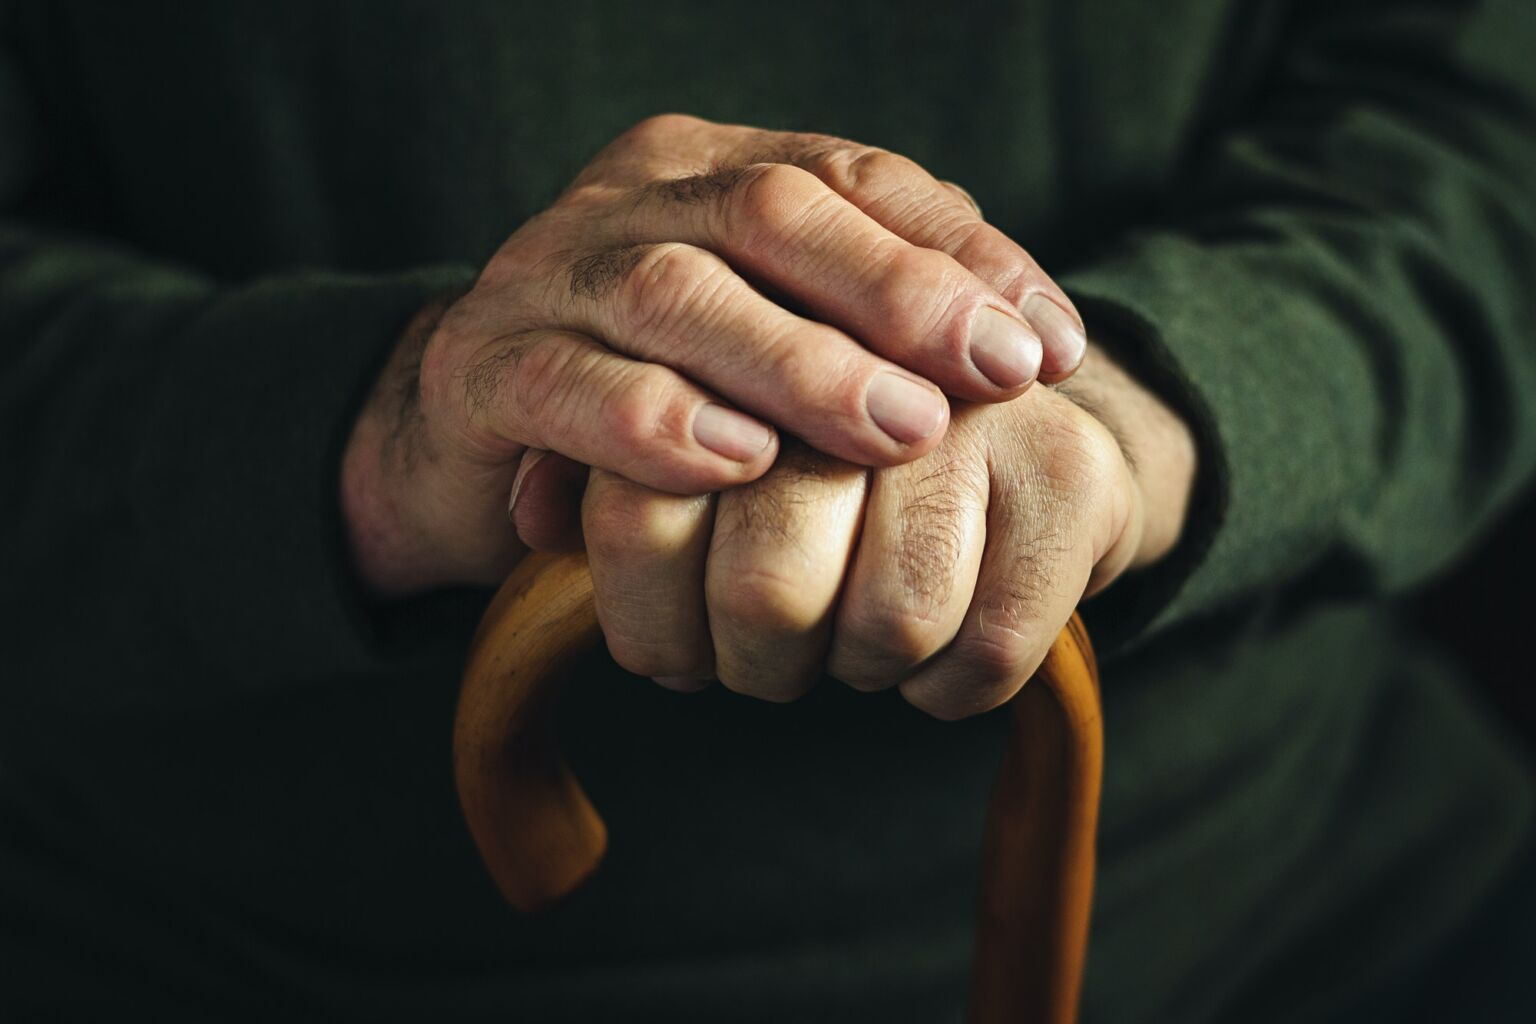 Gnarled arthritic fingers of an old man